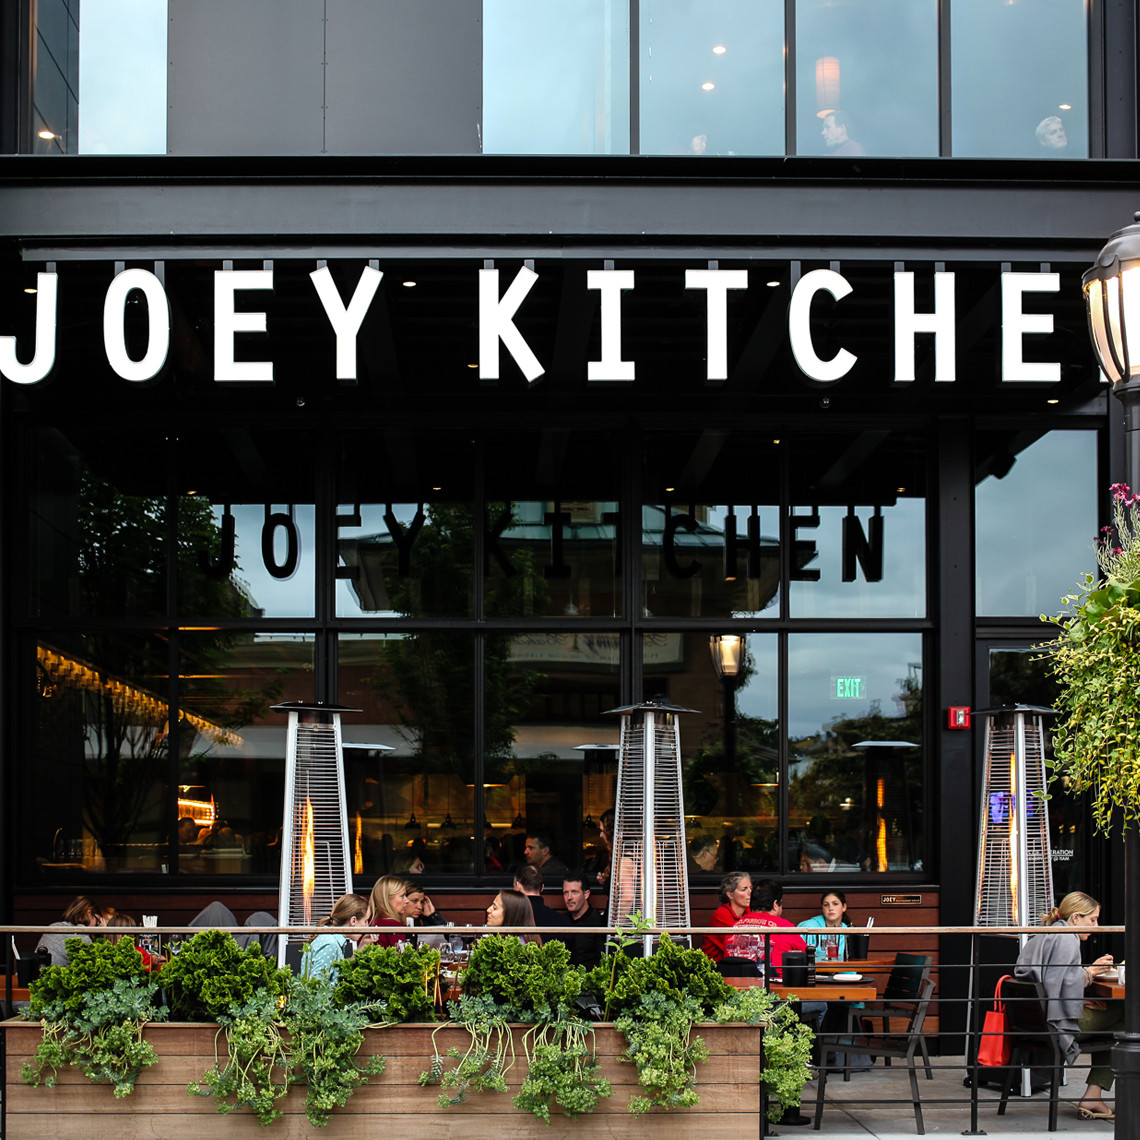 With Two Large Exterior Patios Guests Can Also Enjoy Outdoor Dining Nearly All Year Round Joey Kitchen Is The Us Flagship Property For Restaurants